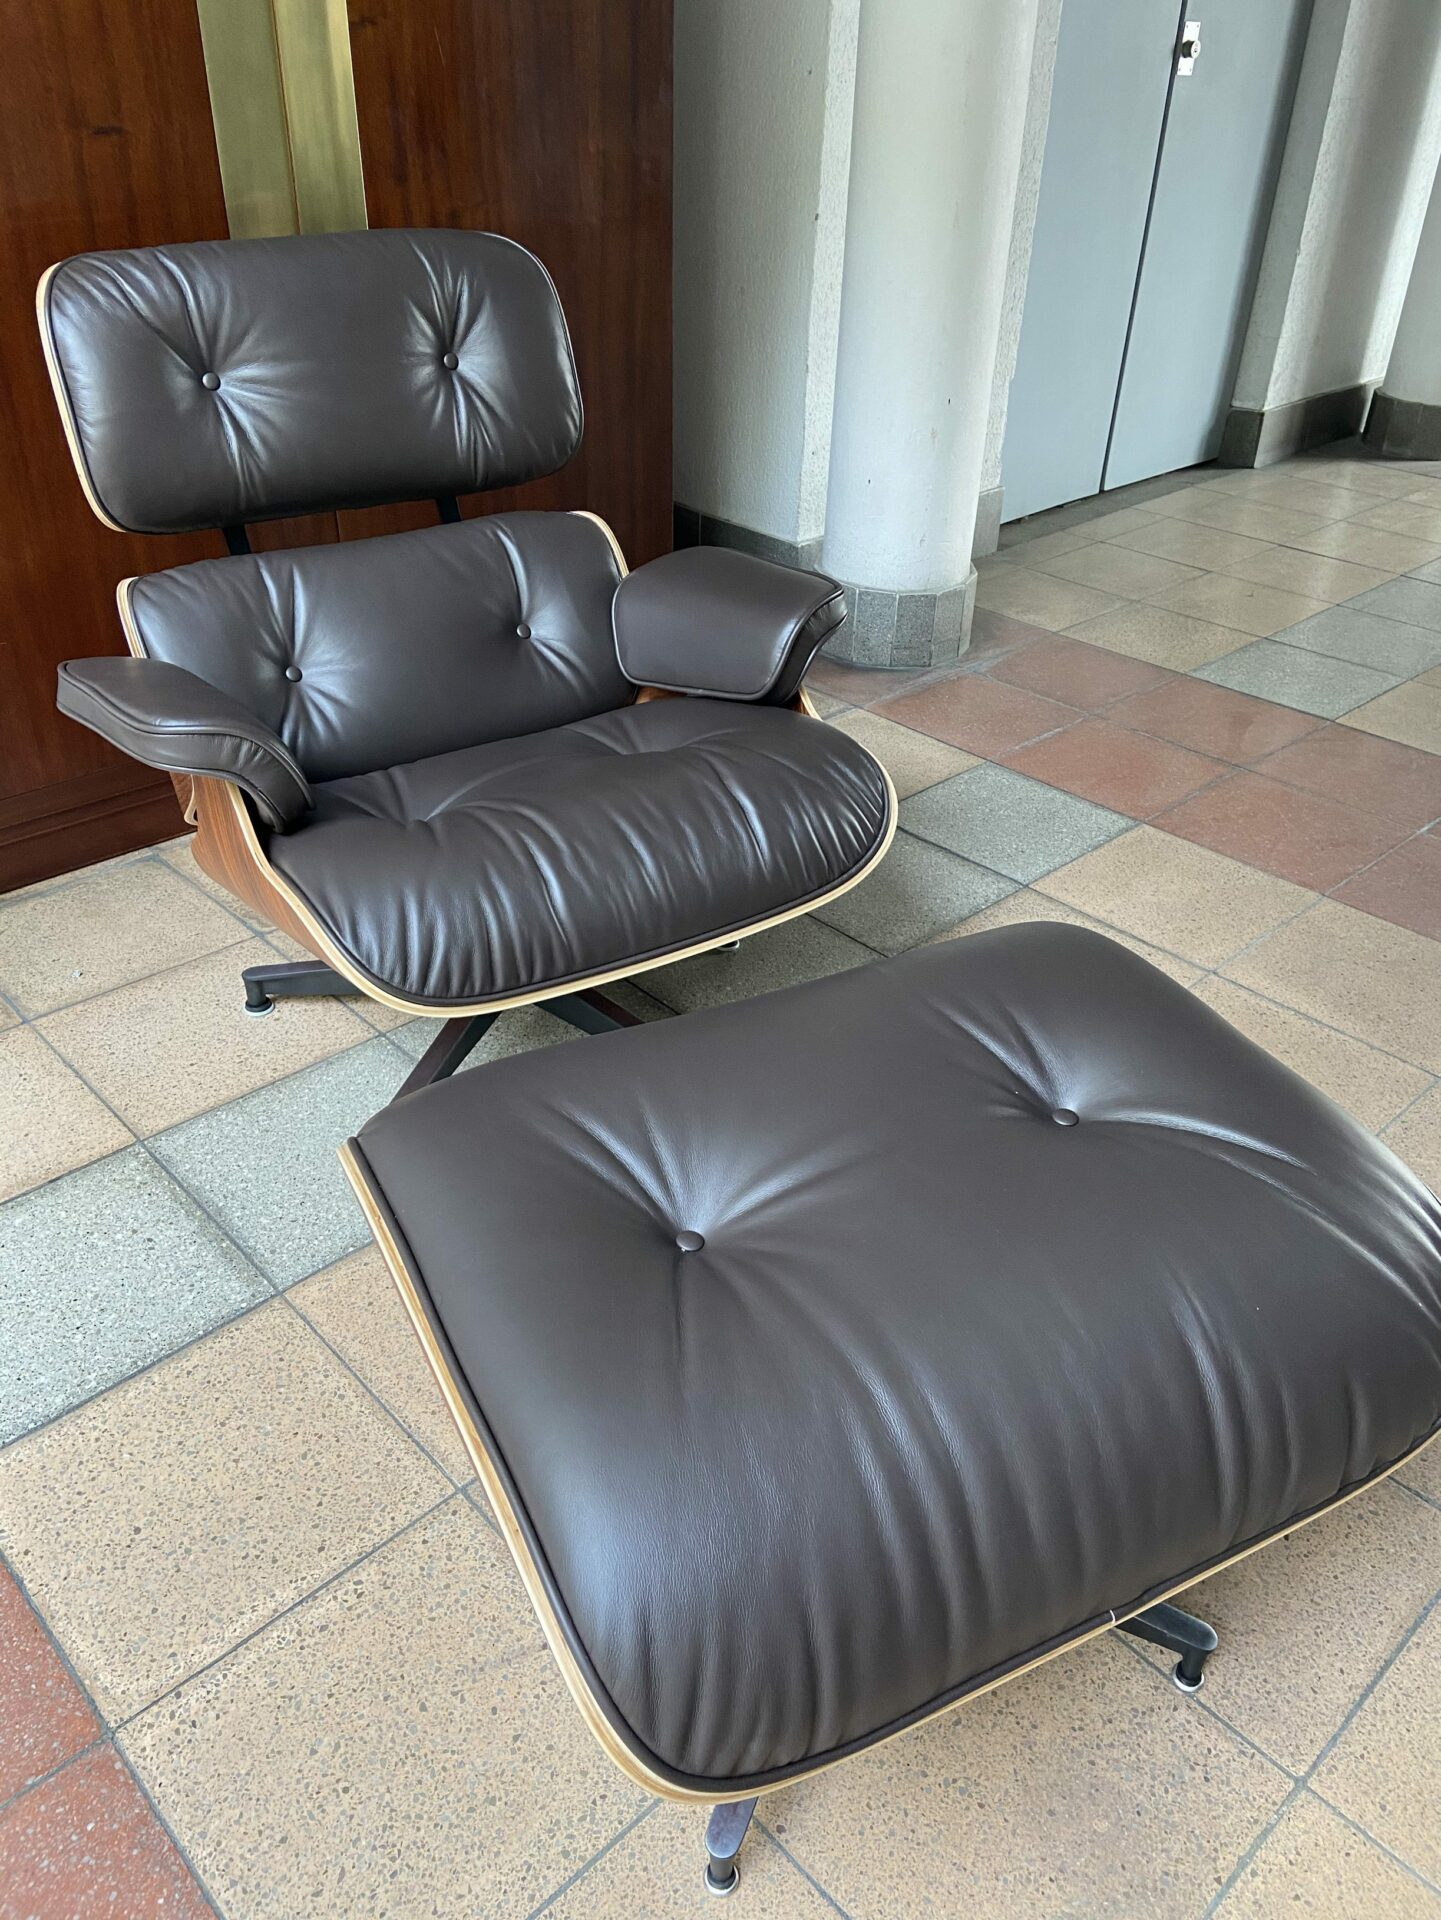 Charles Eames Lounge Chair Charles Eames - Lounge Chair And Ottoman | Auctionlab